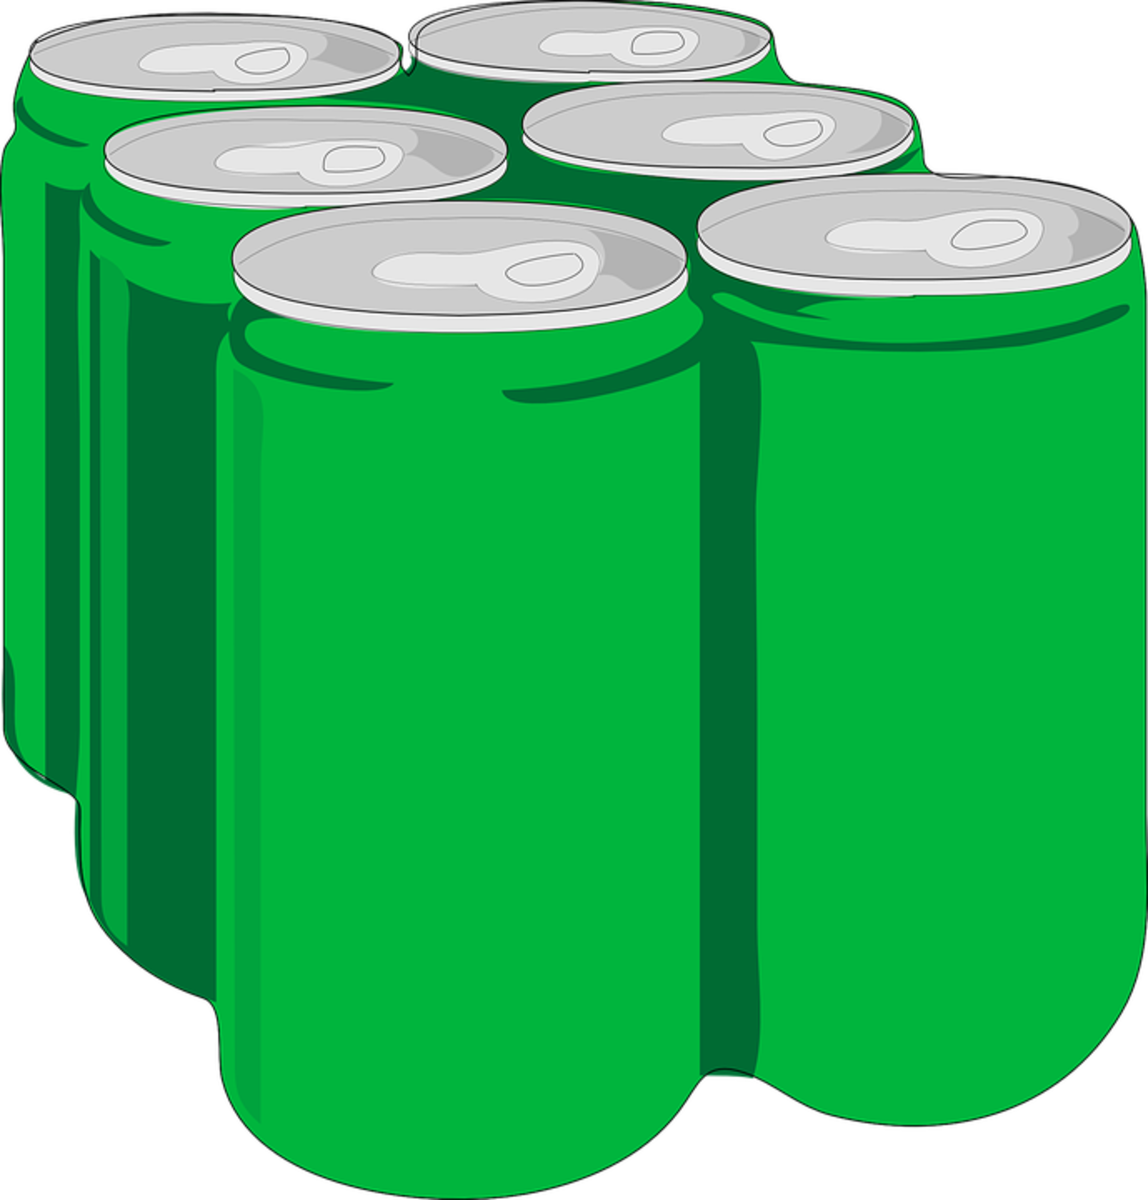 Interesting Facts About Soda - a Carbonated Beverage